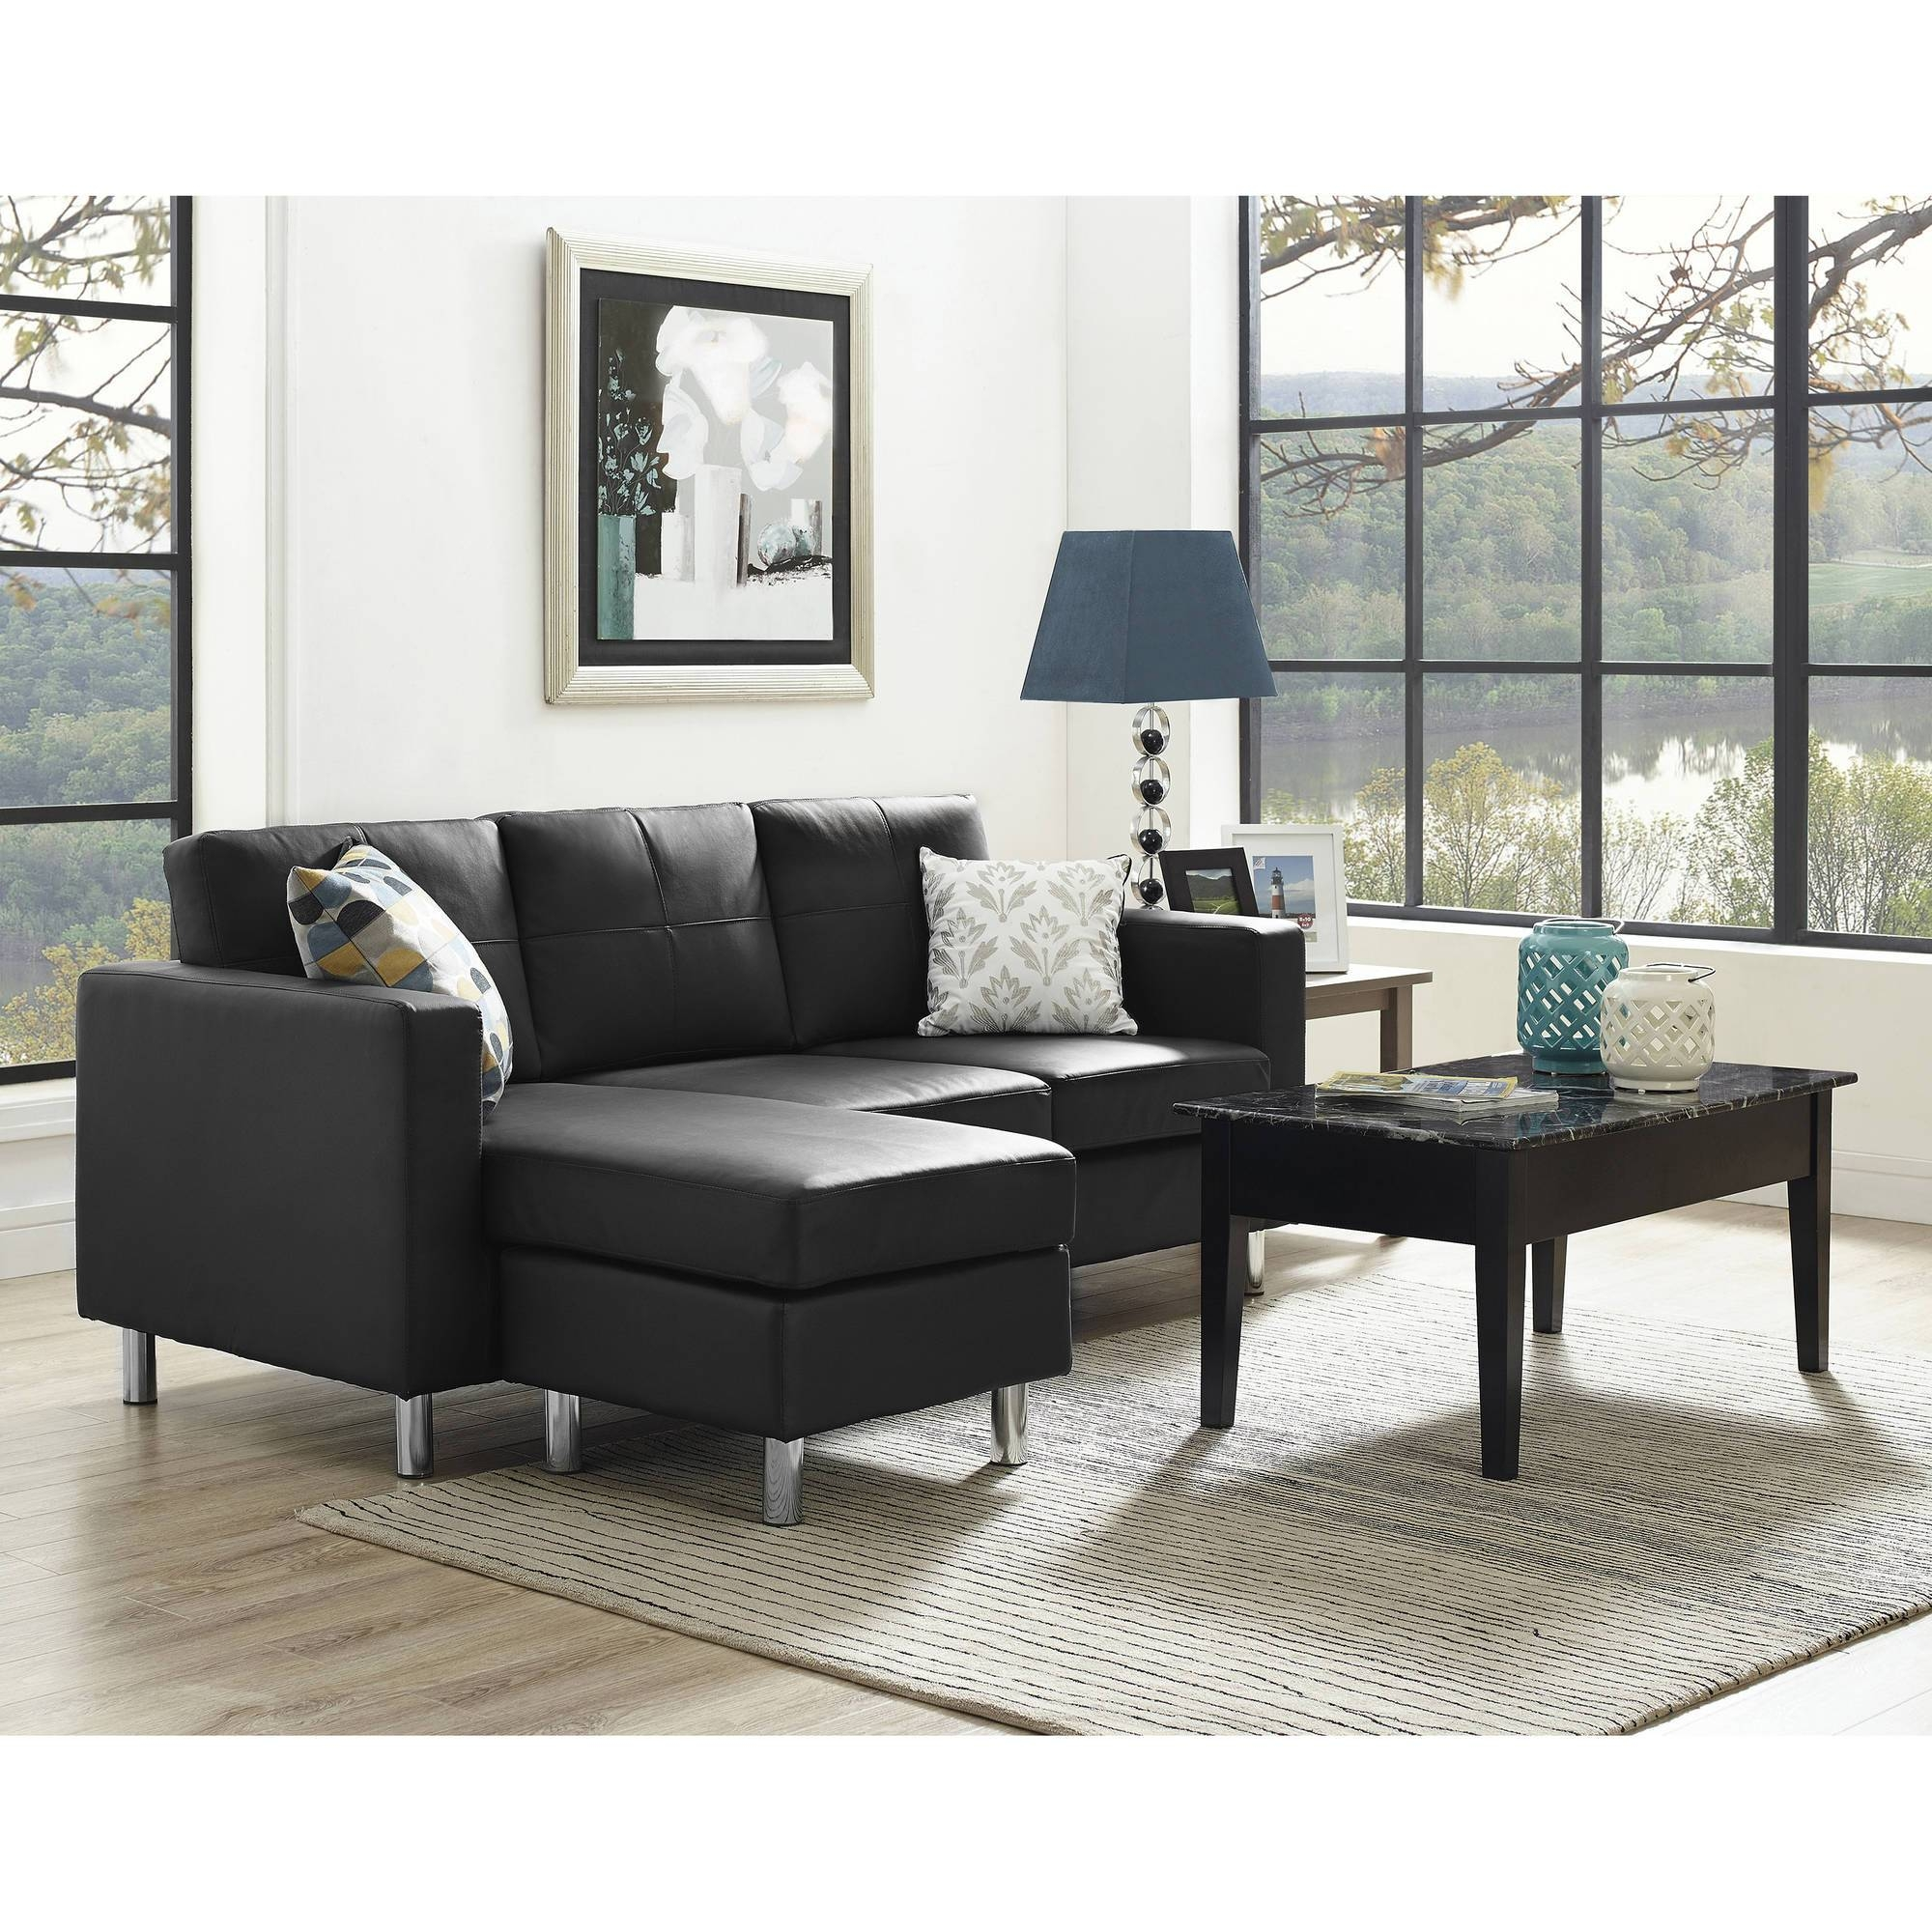 Dorel Living Small Spaces Configurable Sectional Sofa, Multiple throughout Small Sectional Sofas For Small Spaces (Image 9 of 25)